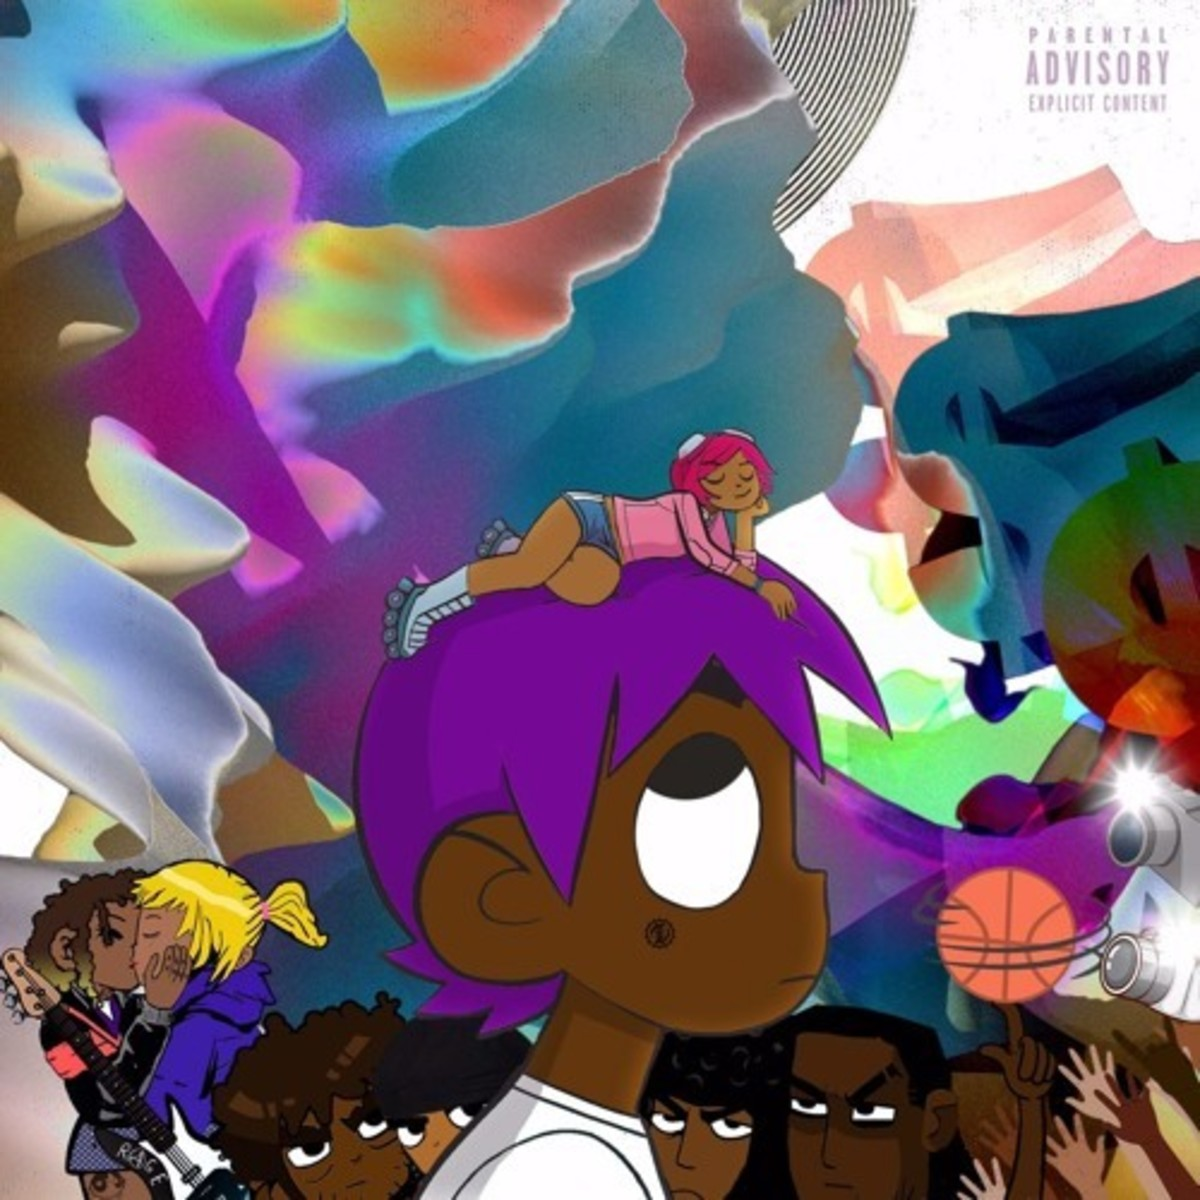 lil-uzi-vert-vs-the-world.jpg